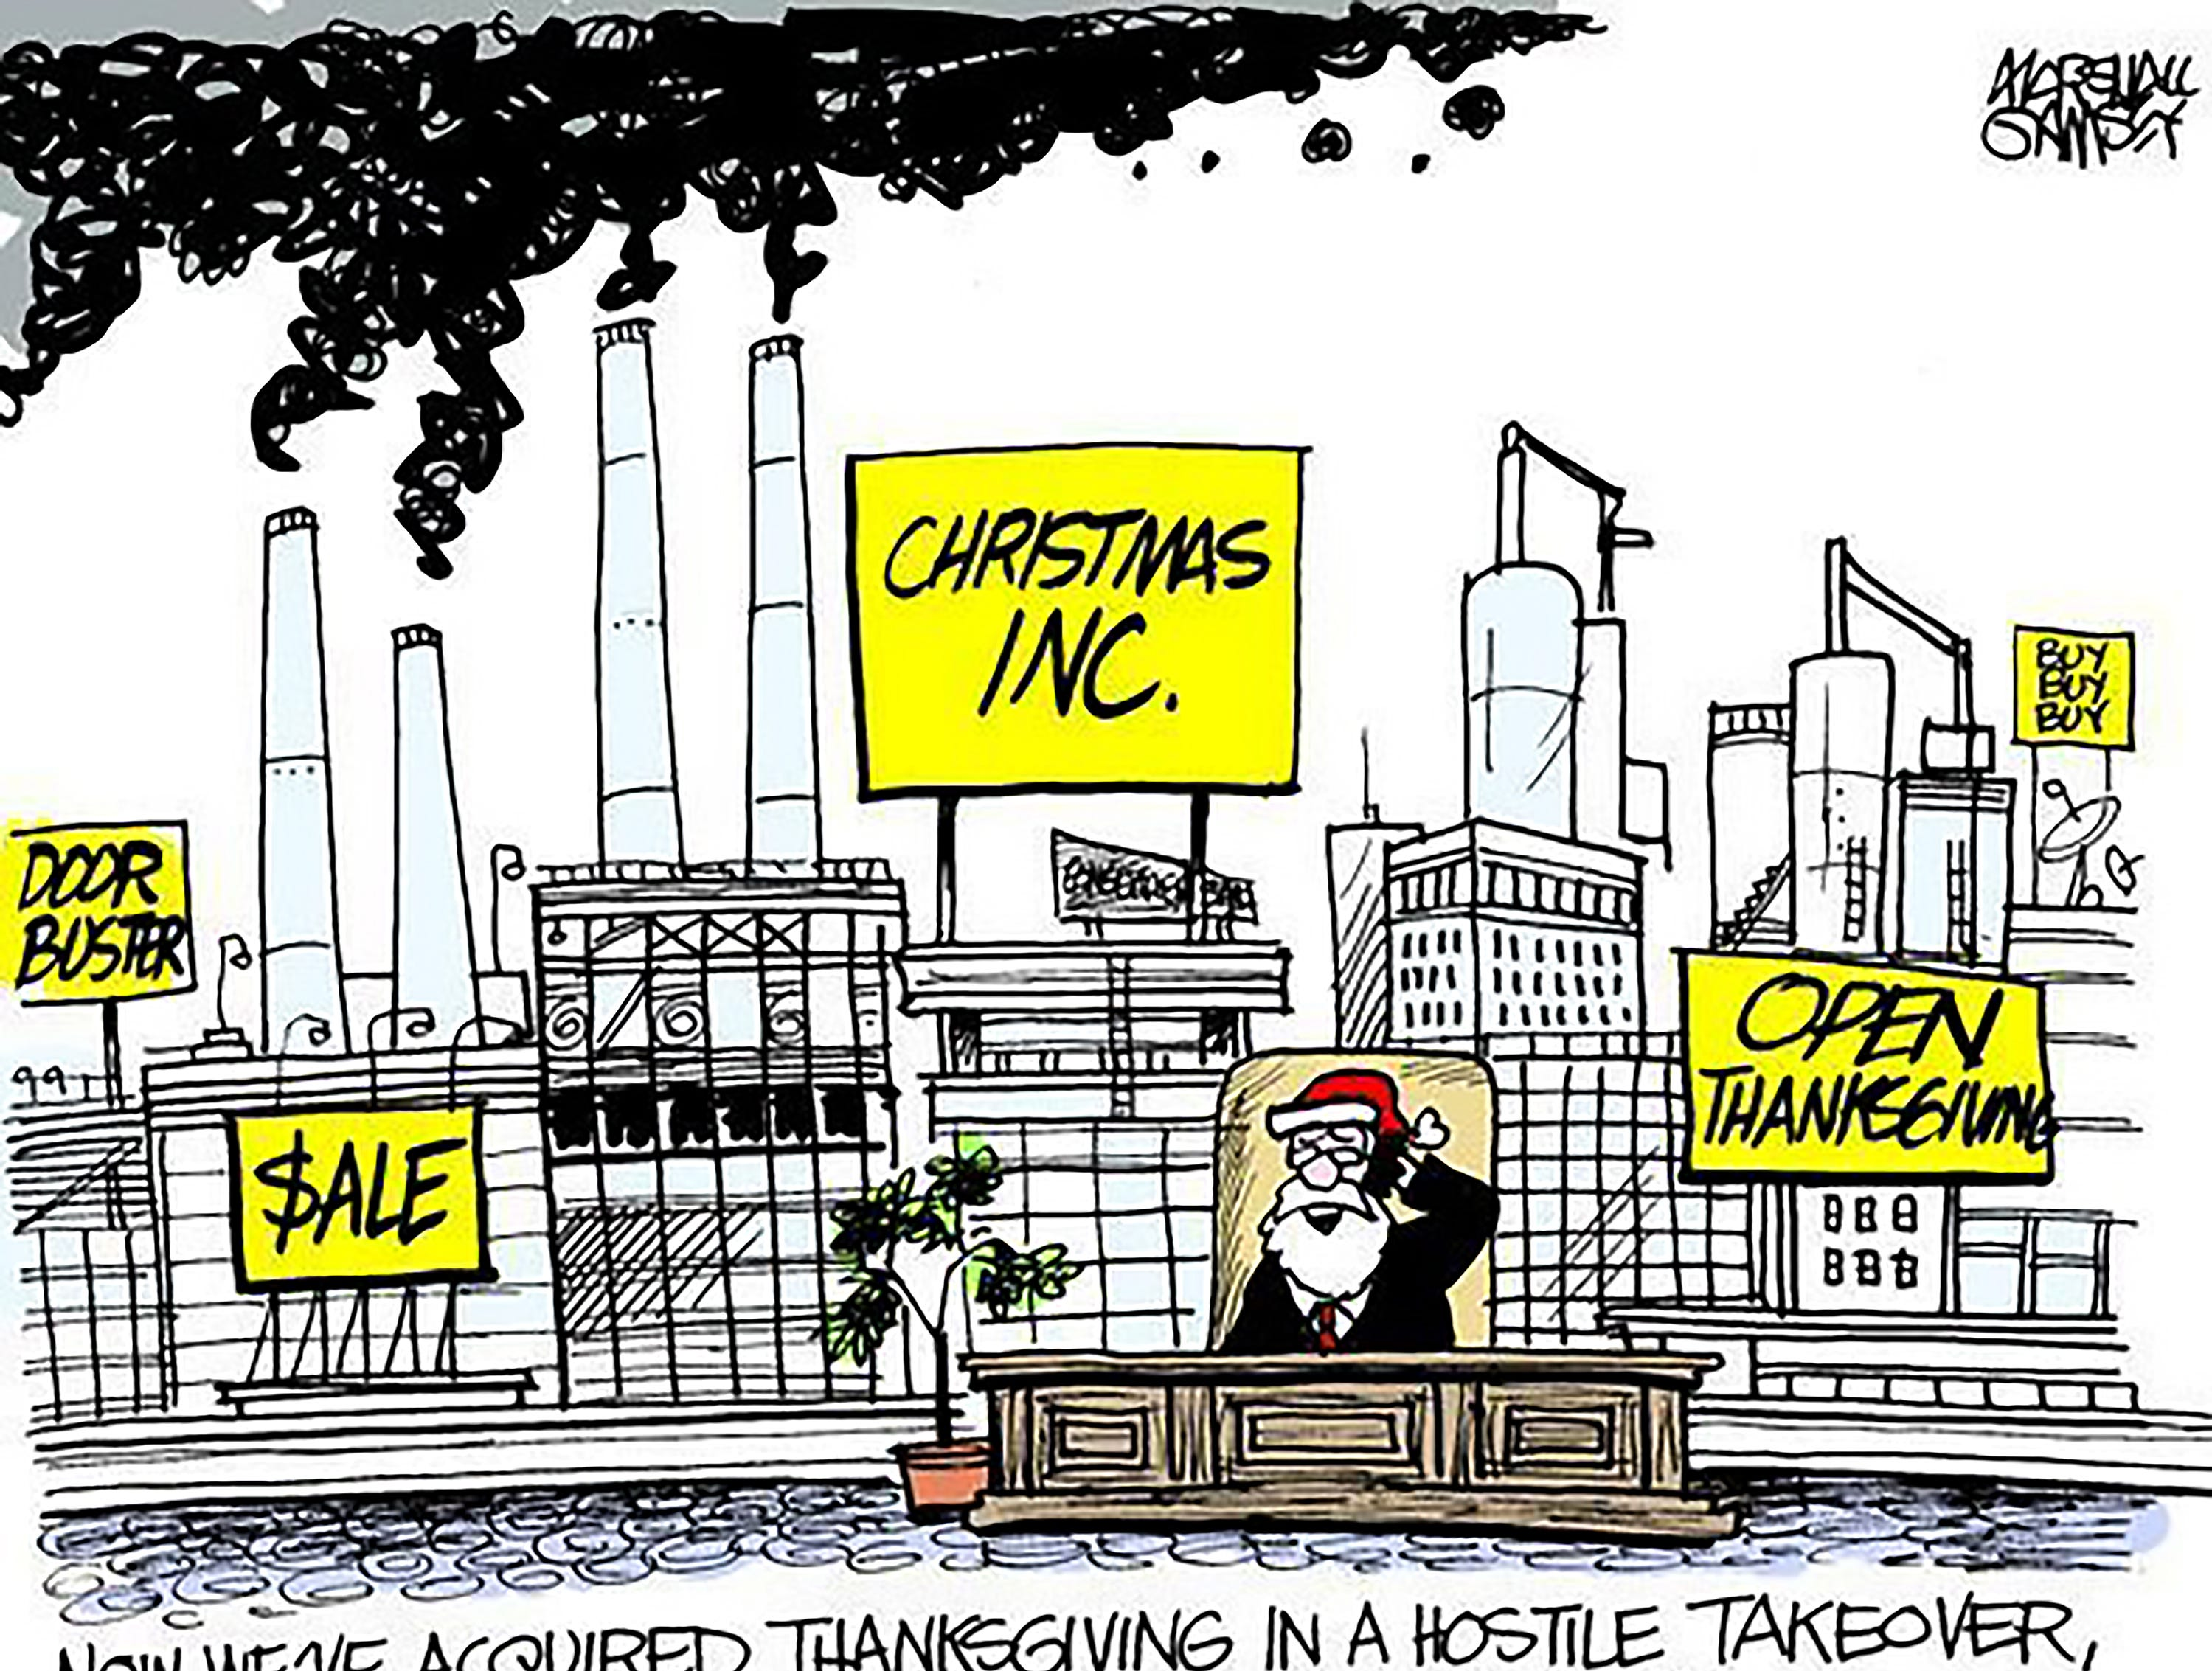 Originally published in November2013. The cartoonist's homepage, clarionledger.com/opinion